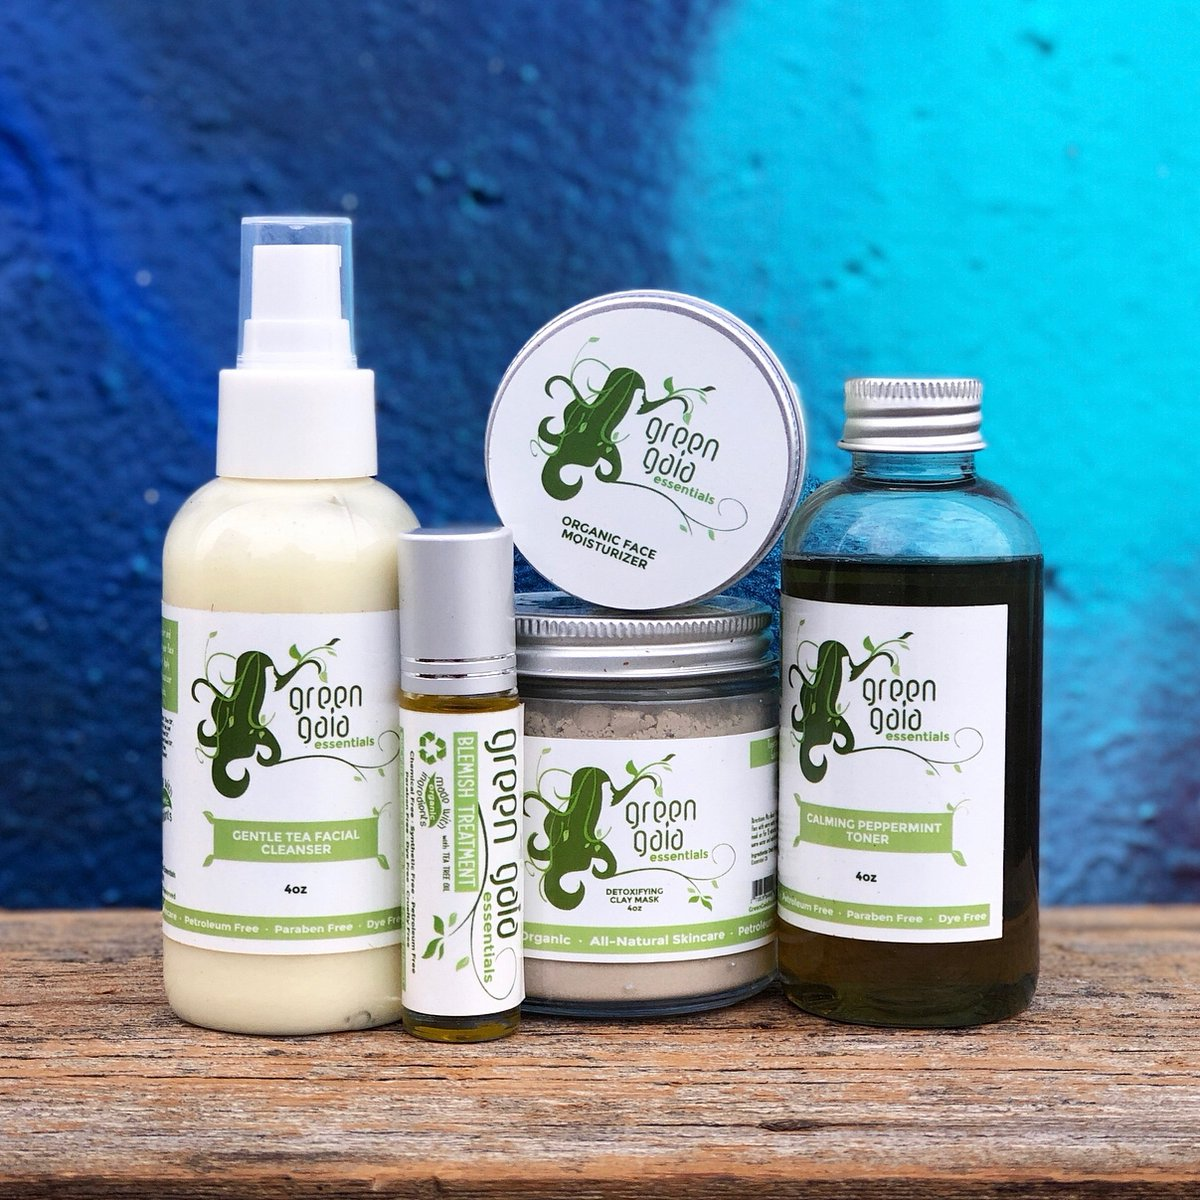 What we put on our bodies is just as important as what we put in our bodies. Green Gaia Essentials products are all-natural & made with organic ingredients.   Free shipping all weekend, and you can save 35% when you use code FRIDAY at checkout.  #womanownebusiness #vegan #organic https://t.co/kmNr9osqgf